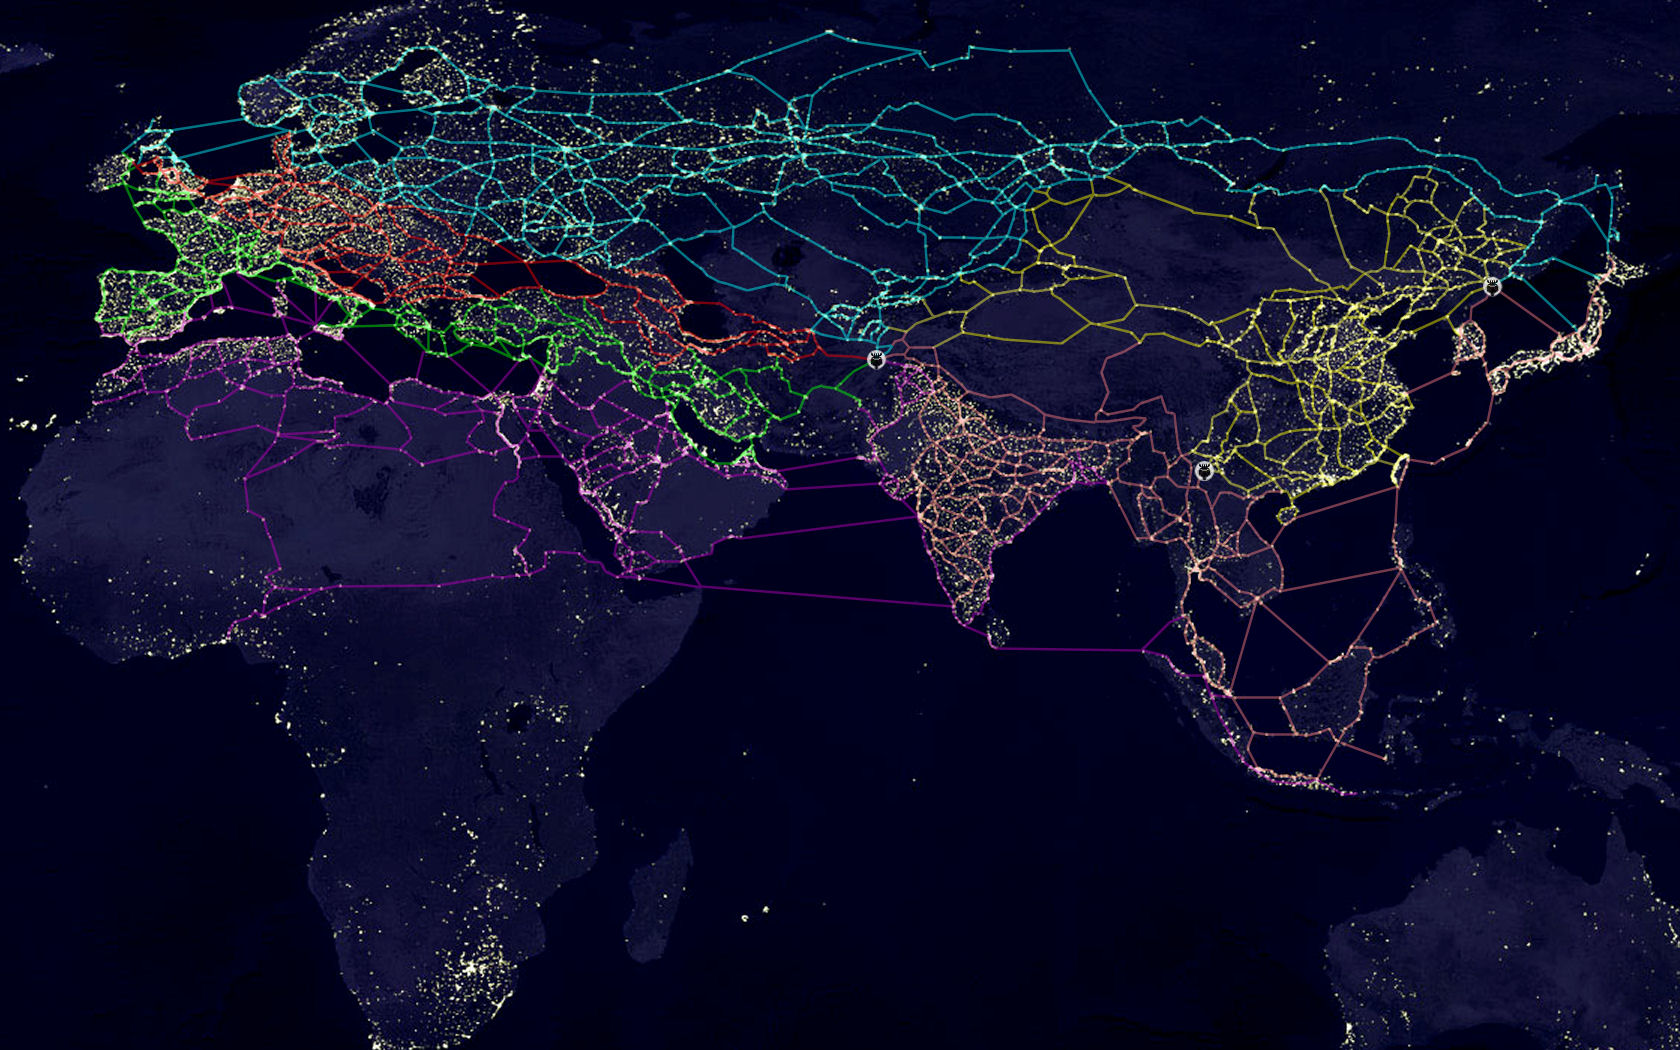 File Opiumtraderoutes Jpg Wikimedia Commons